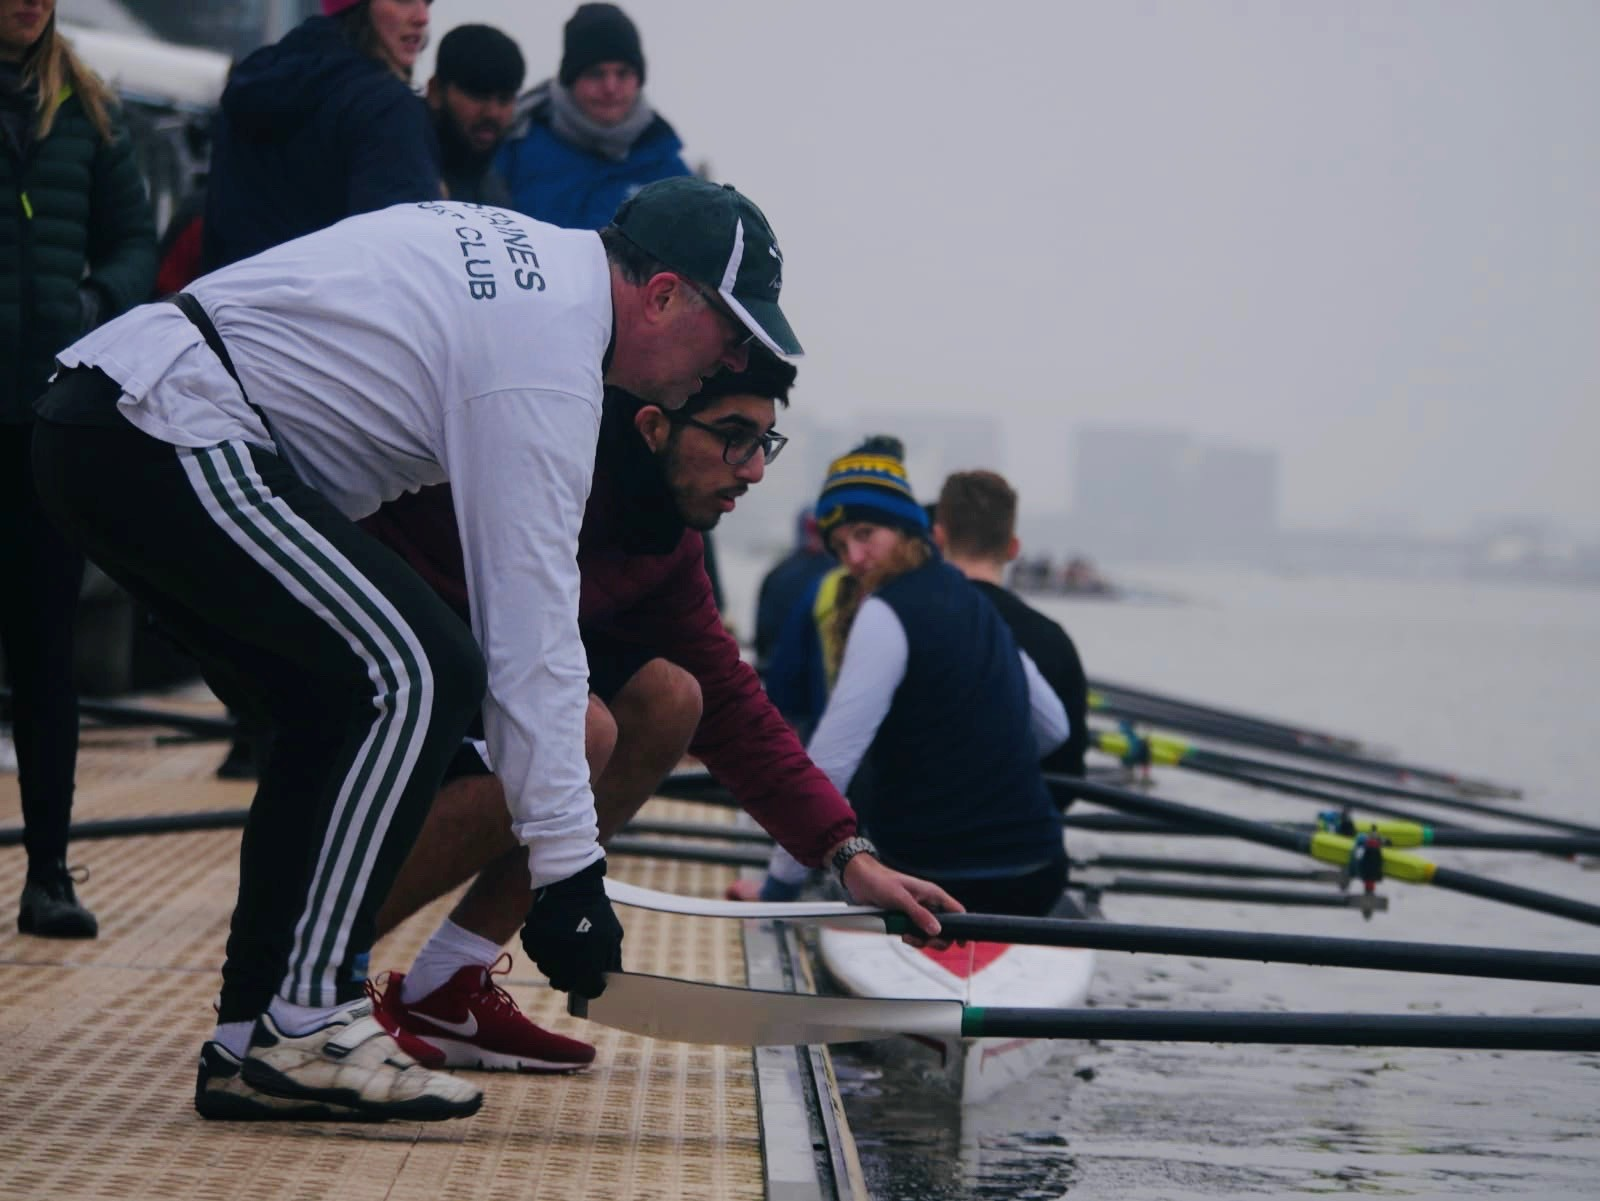 Haider draws in the oars